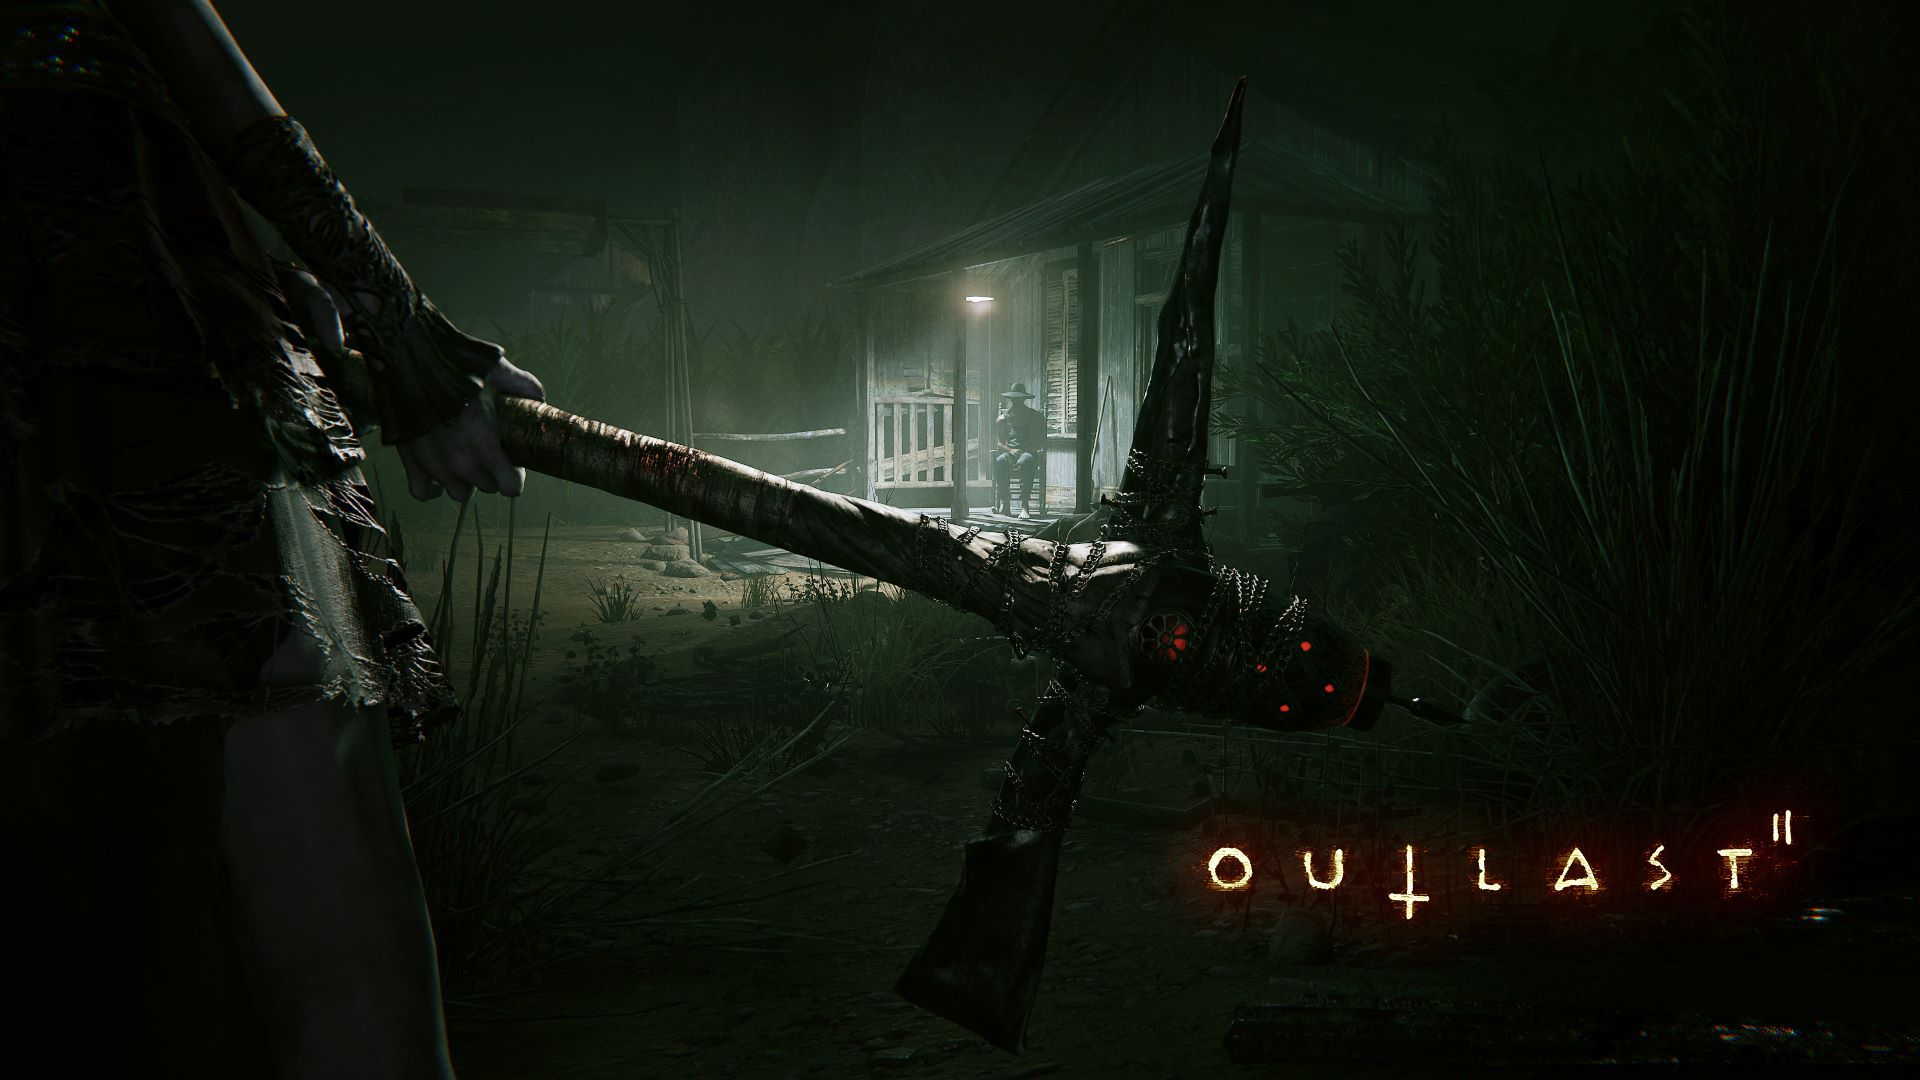 1920x1080 - Outlast HD Wallpapers 4